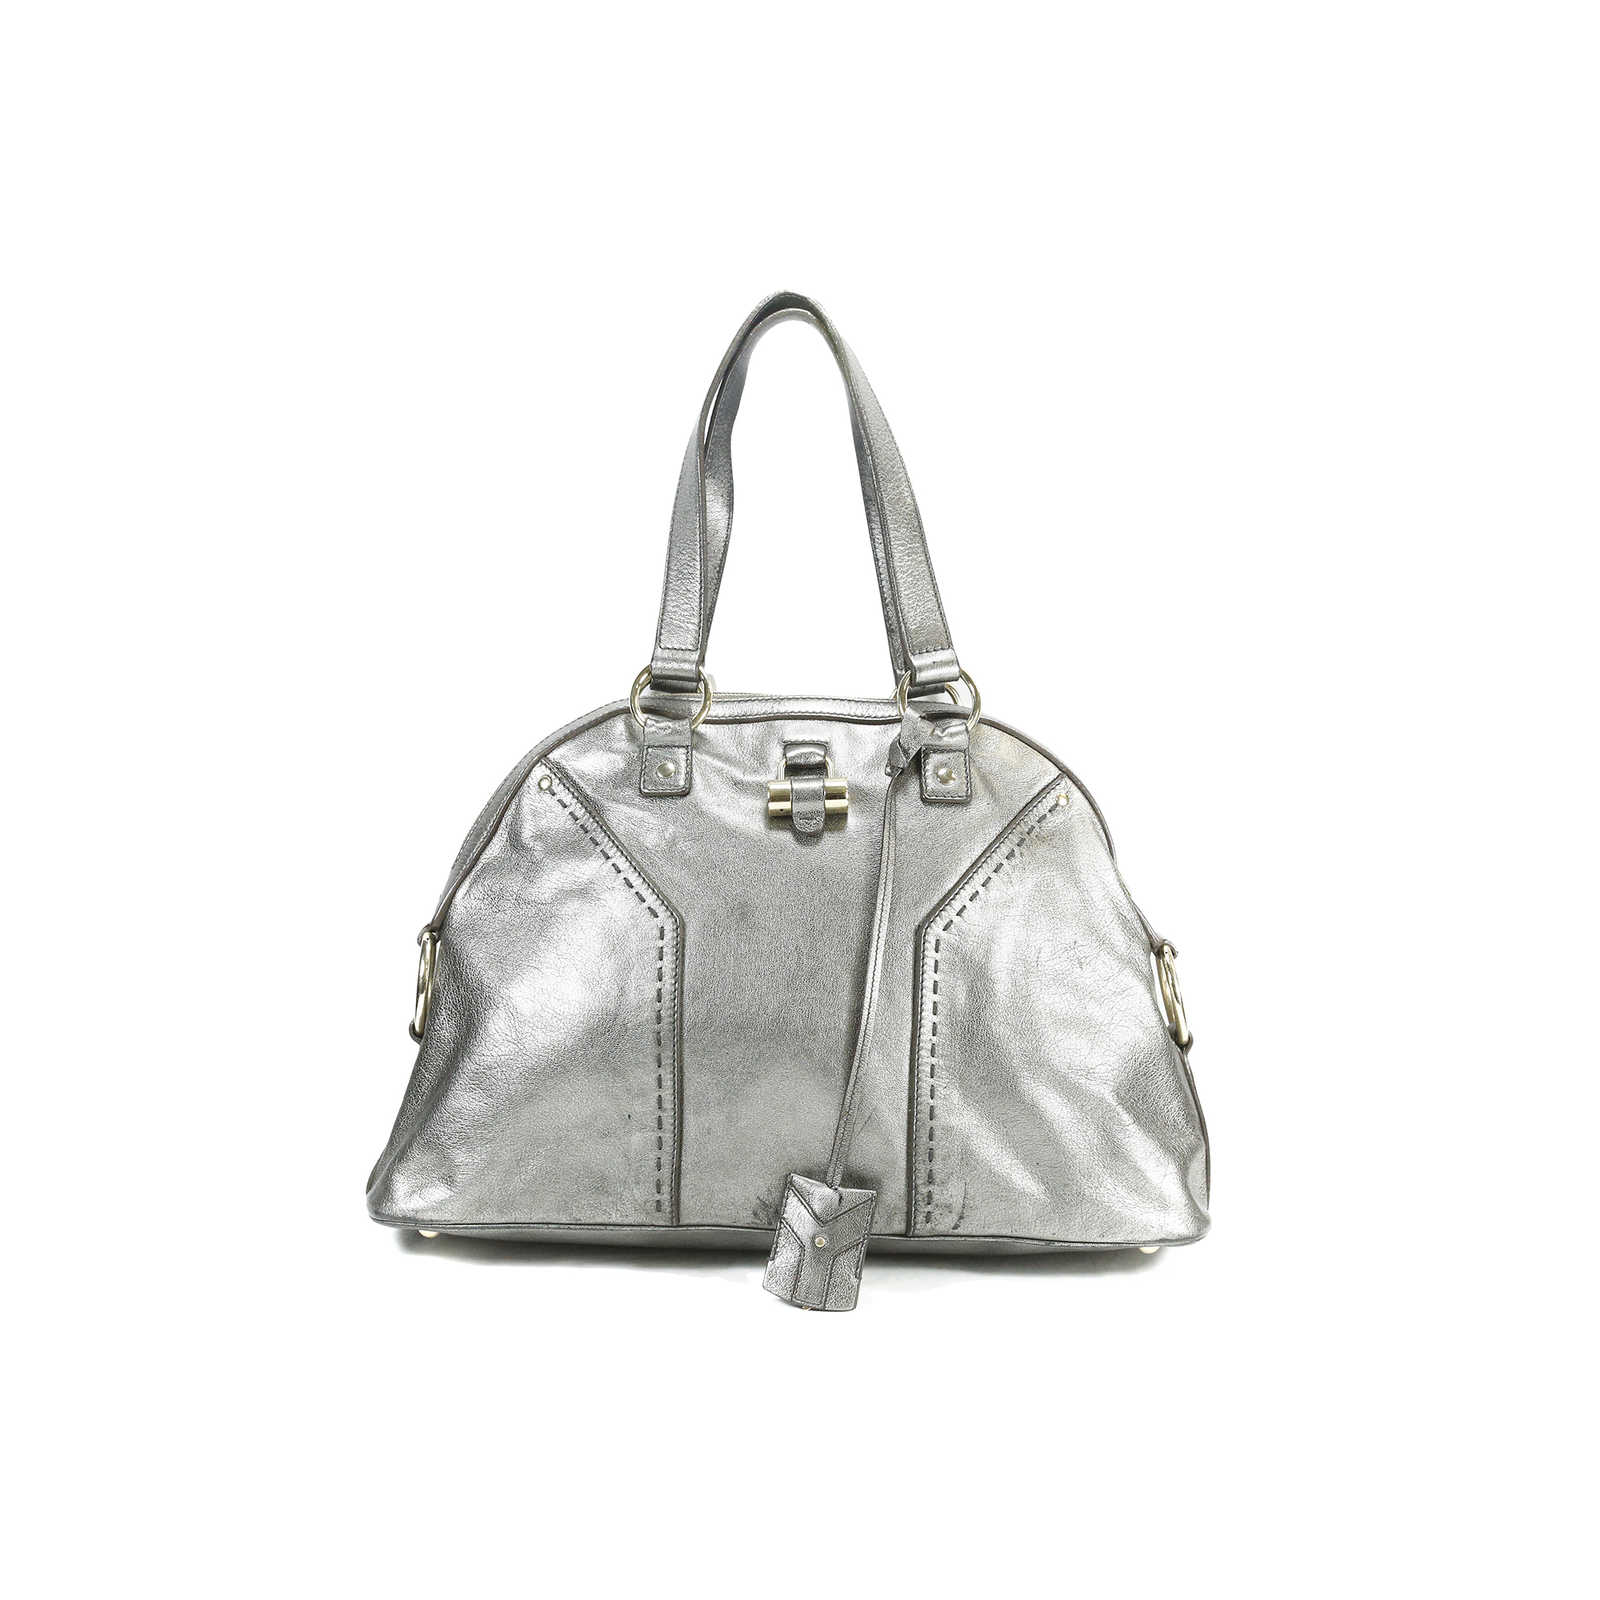 f1aa4929e2 Authentic Second Hand Yves Saint Laurent Muse bag (PSS-005-00008) ...